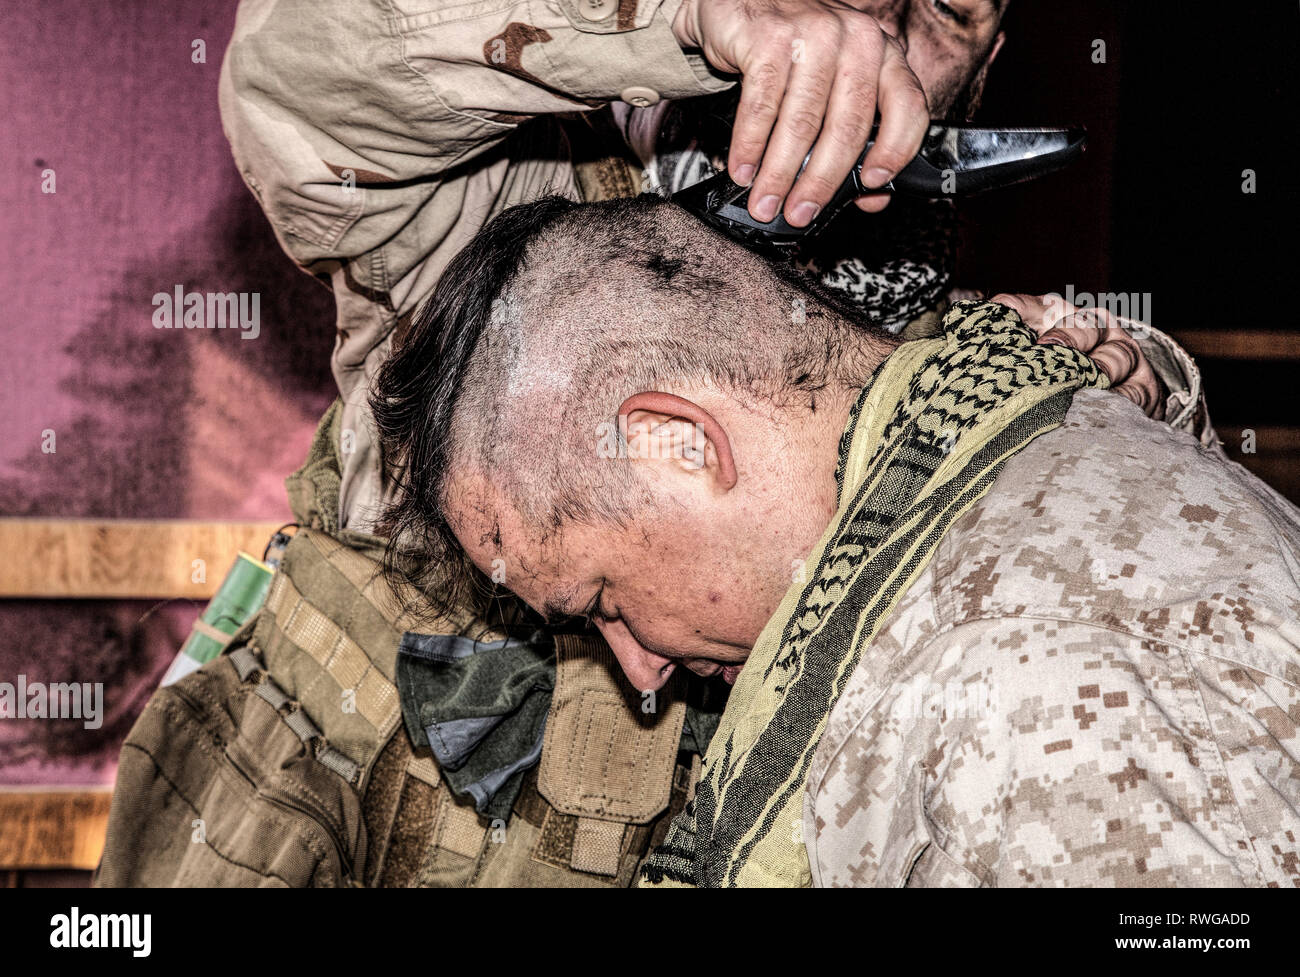 U.S. Marine shaving friends head with clipper. - Stock Image